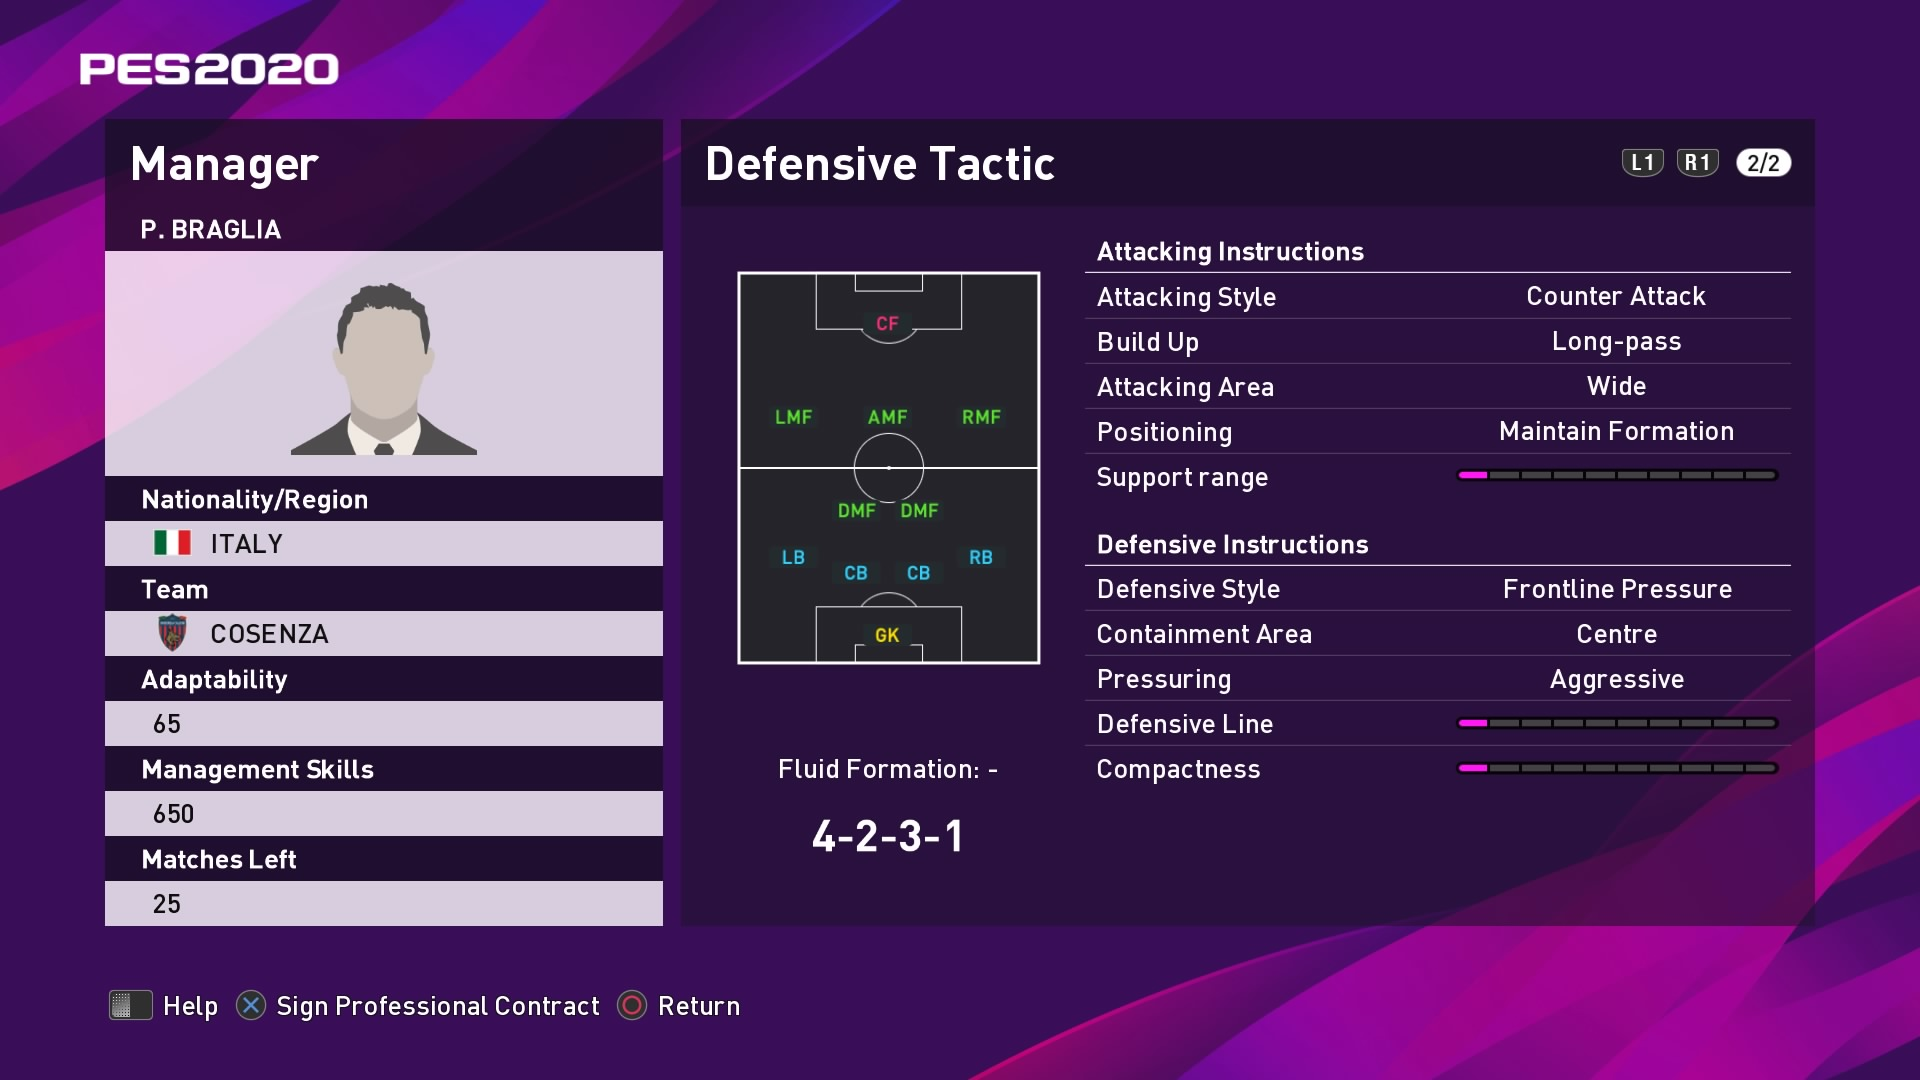 P. Braglia (Piero Braglia) Defensive Tactic in PES 2020 myClub